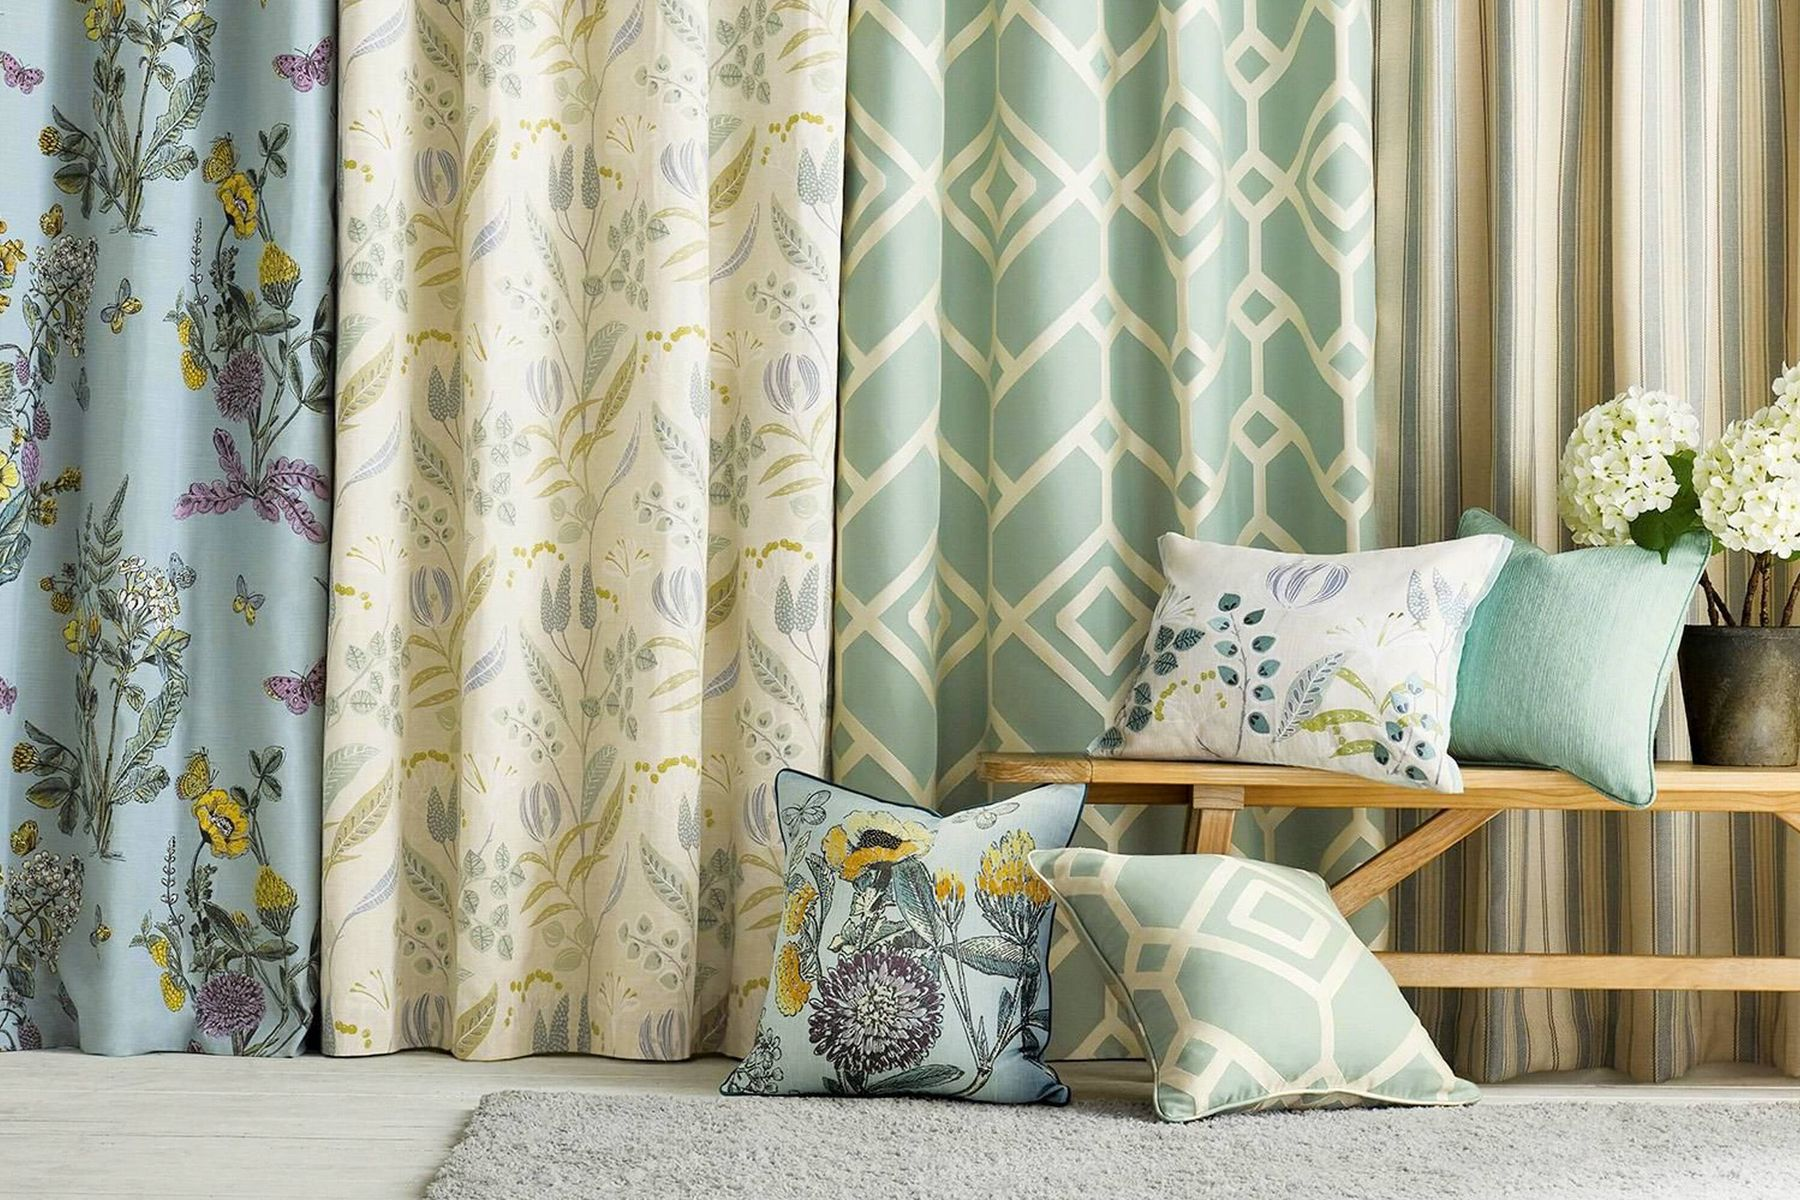 did-your-kid-spill-a-ton-of-paint-on-your-curtains